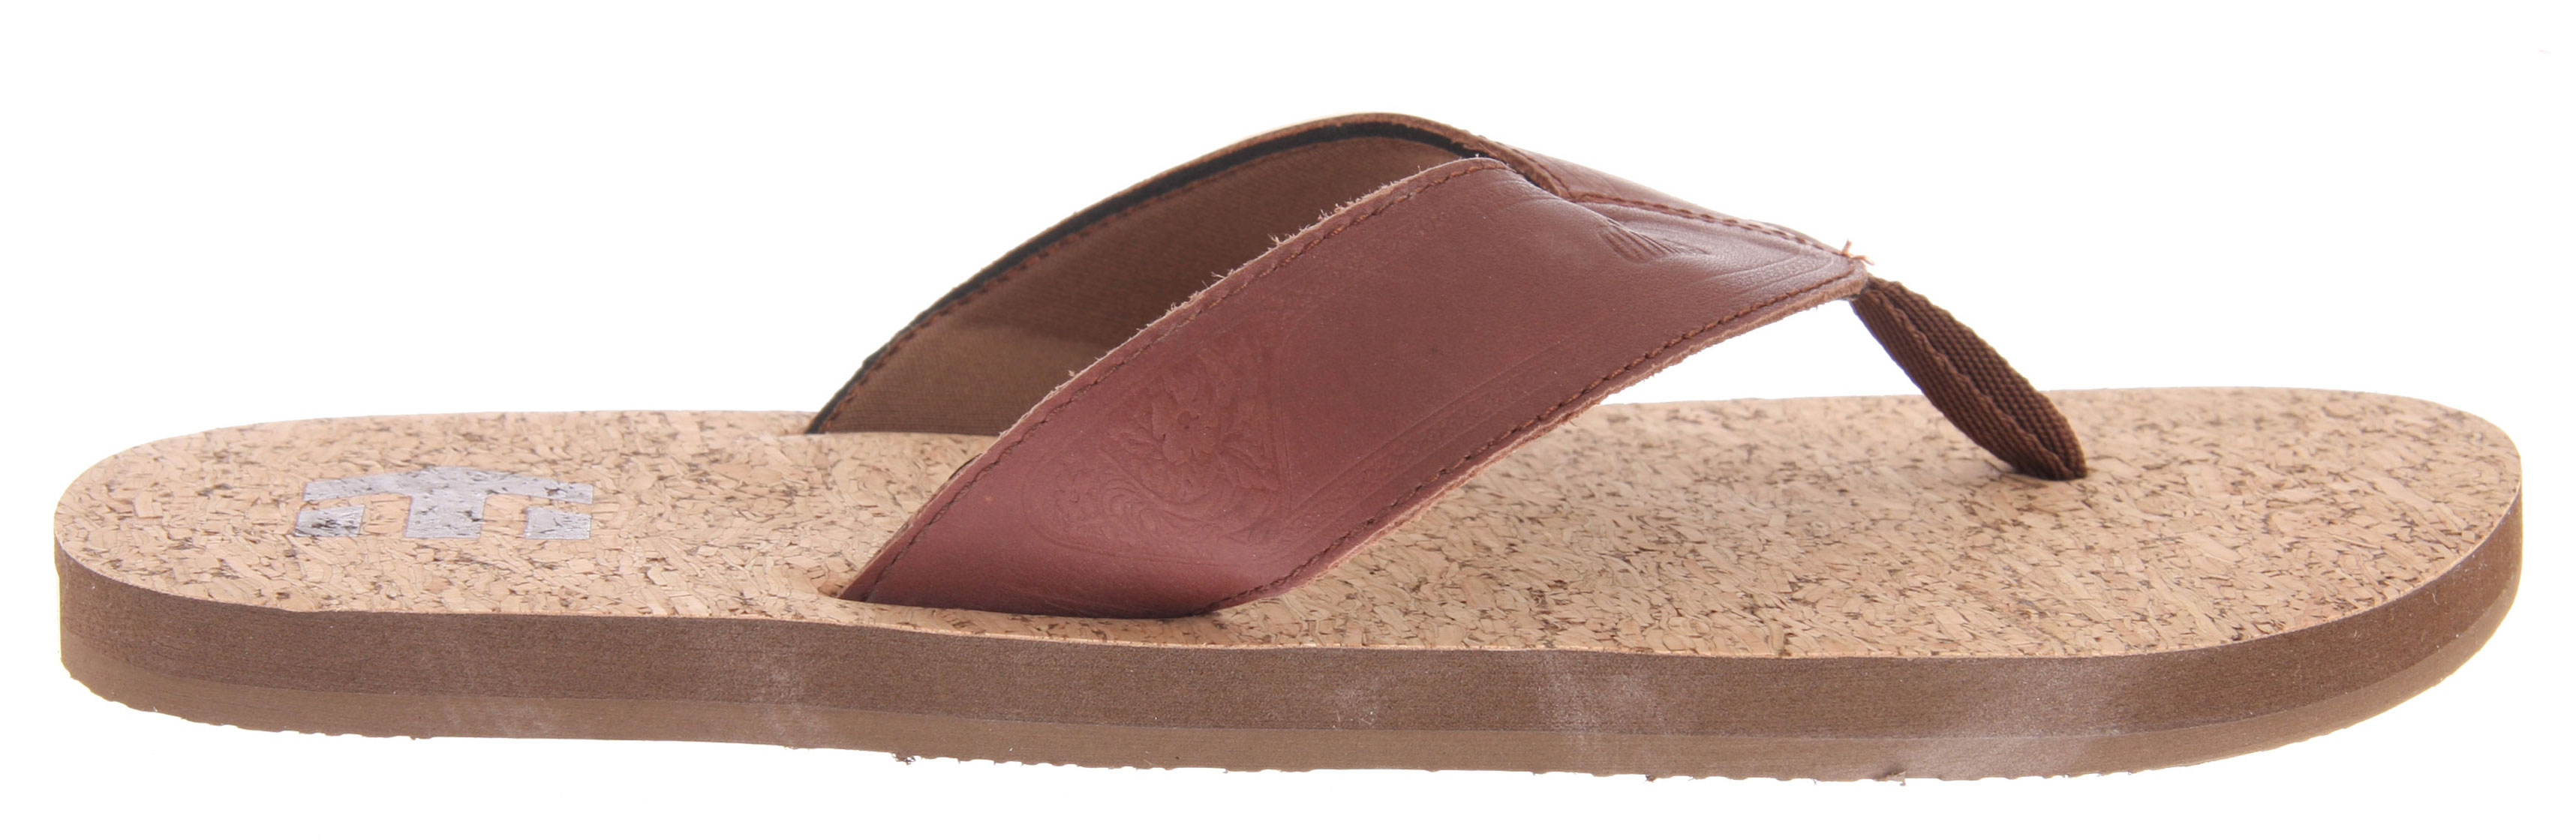 Skateboard Key Features of the Etnies Playa Sandals: Designed by the Molloys Textile cork or leather lined EVA footbed Heat embossed leather straps with eco-friendly neoprene lining Rubber outsole - $18.95